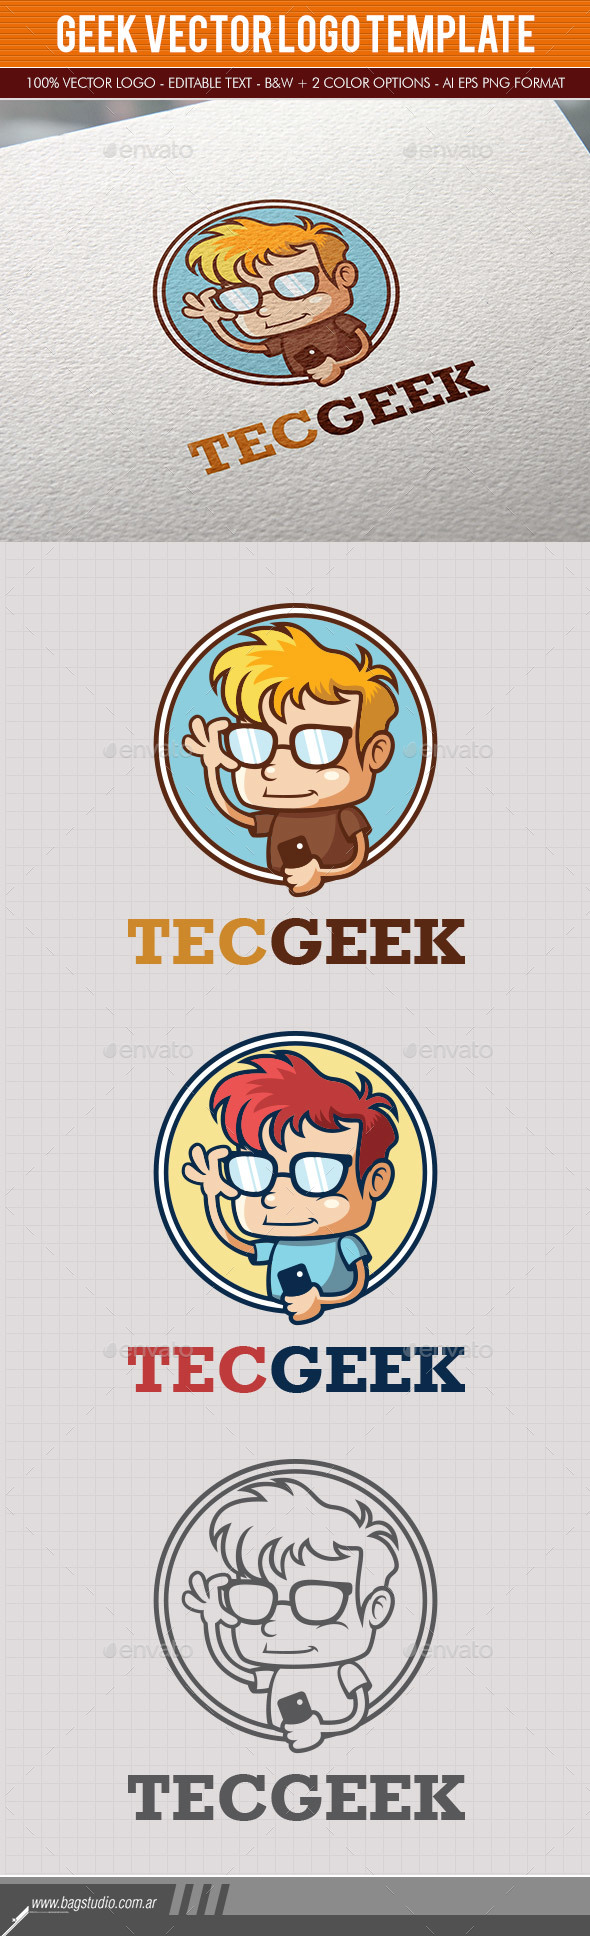 Technology Geek Logo Template